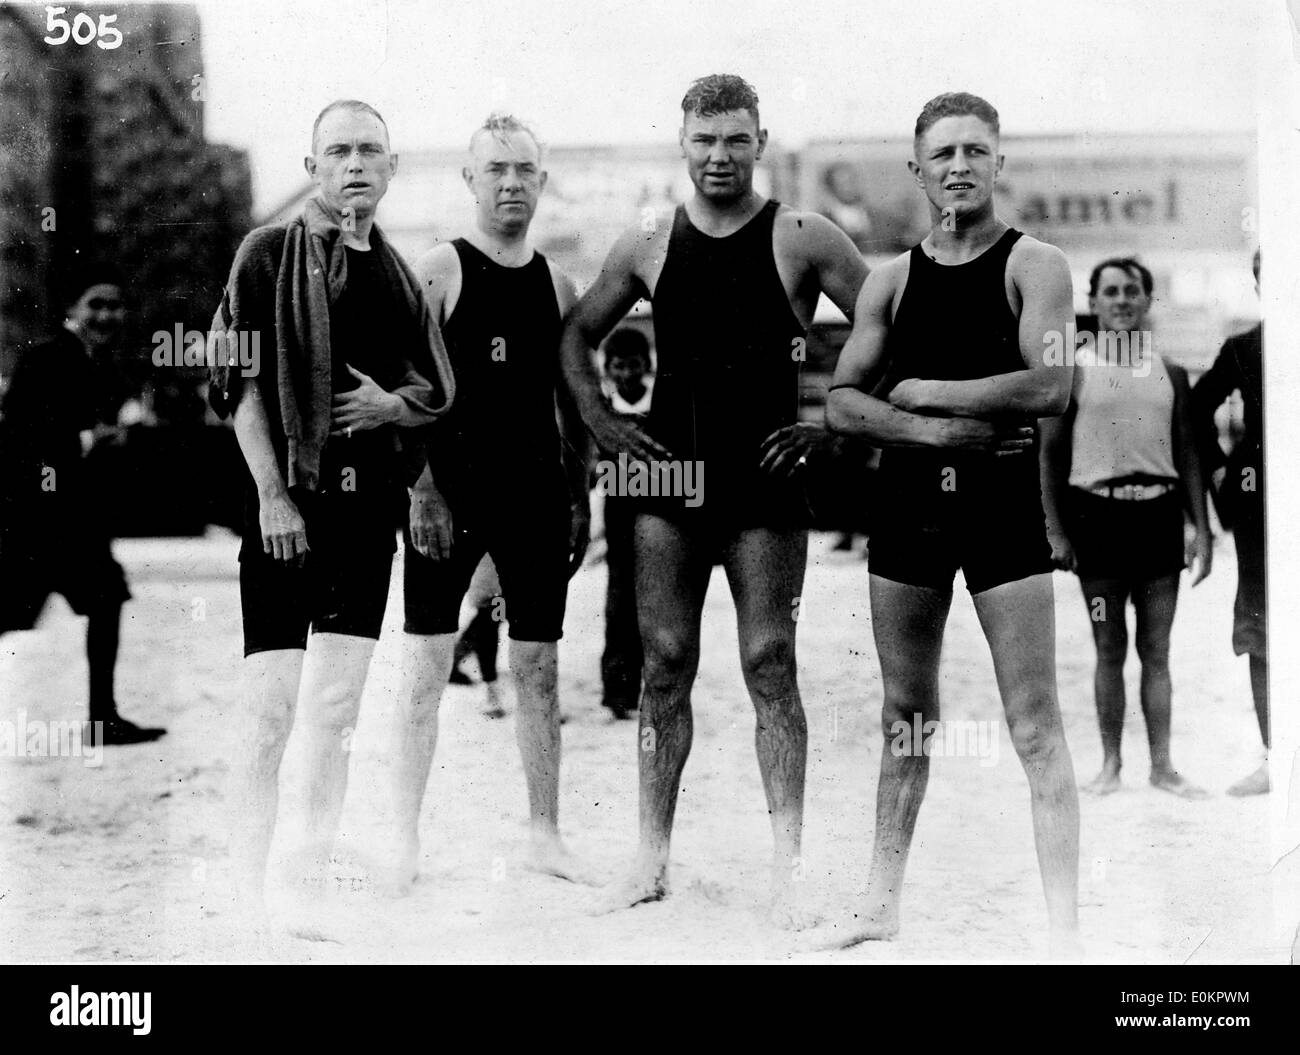 Boxer Jack Dempsey with friends at the beach - Stock Image